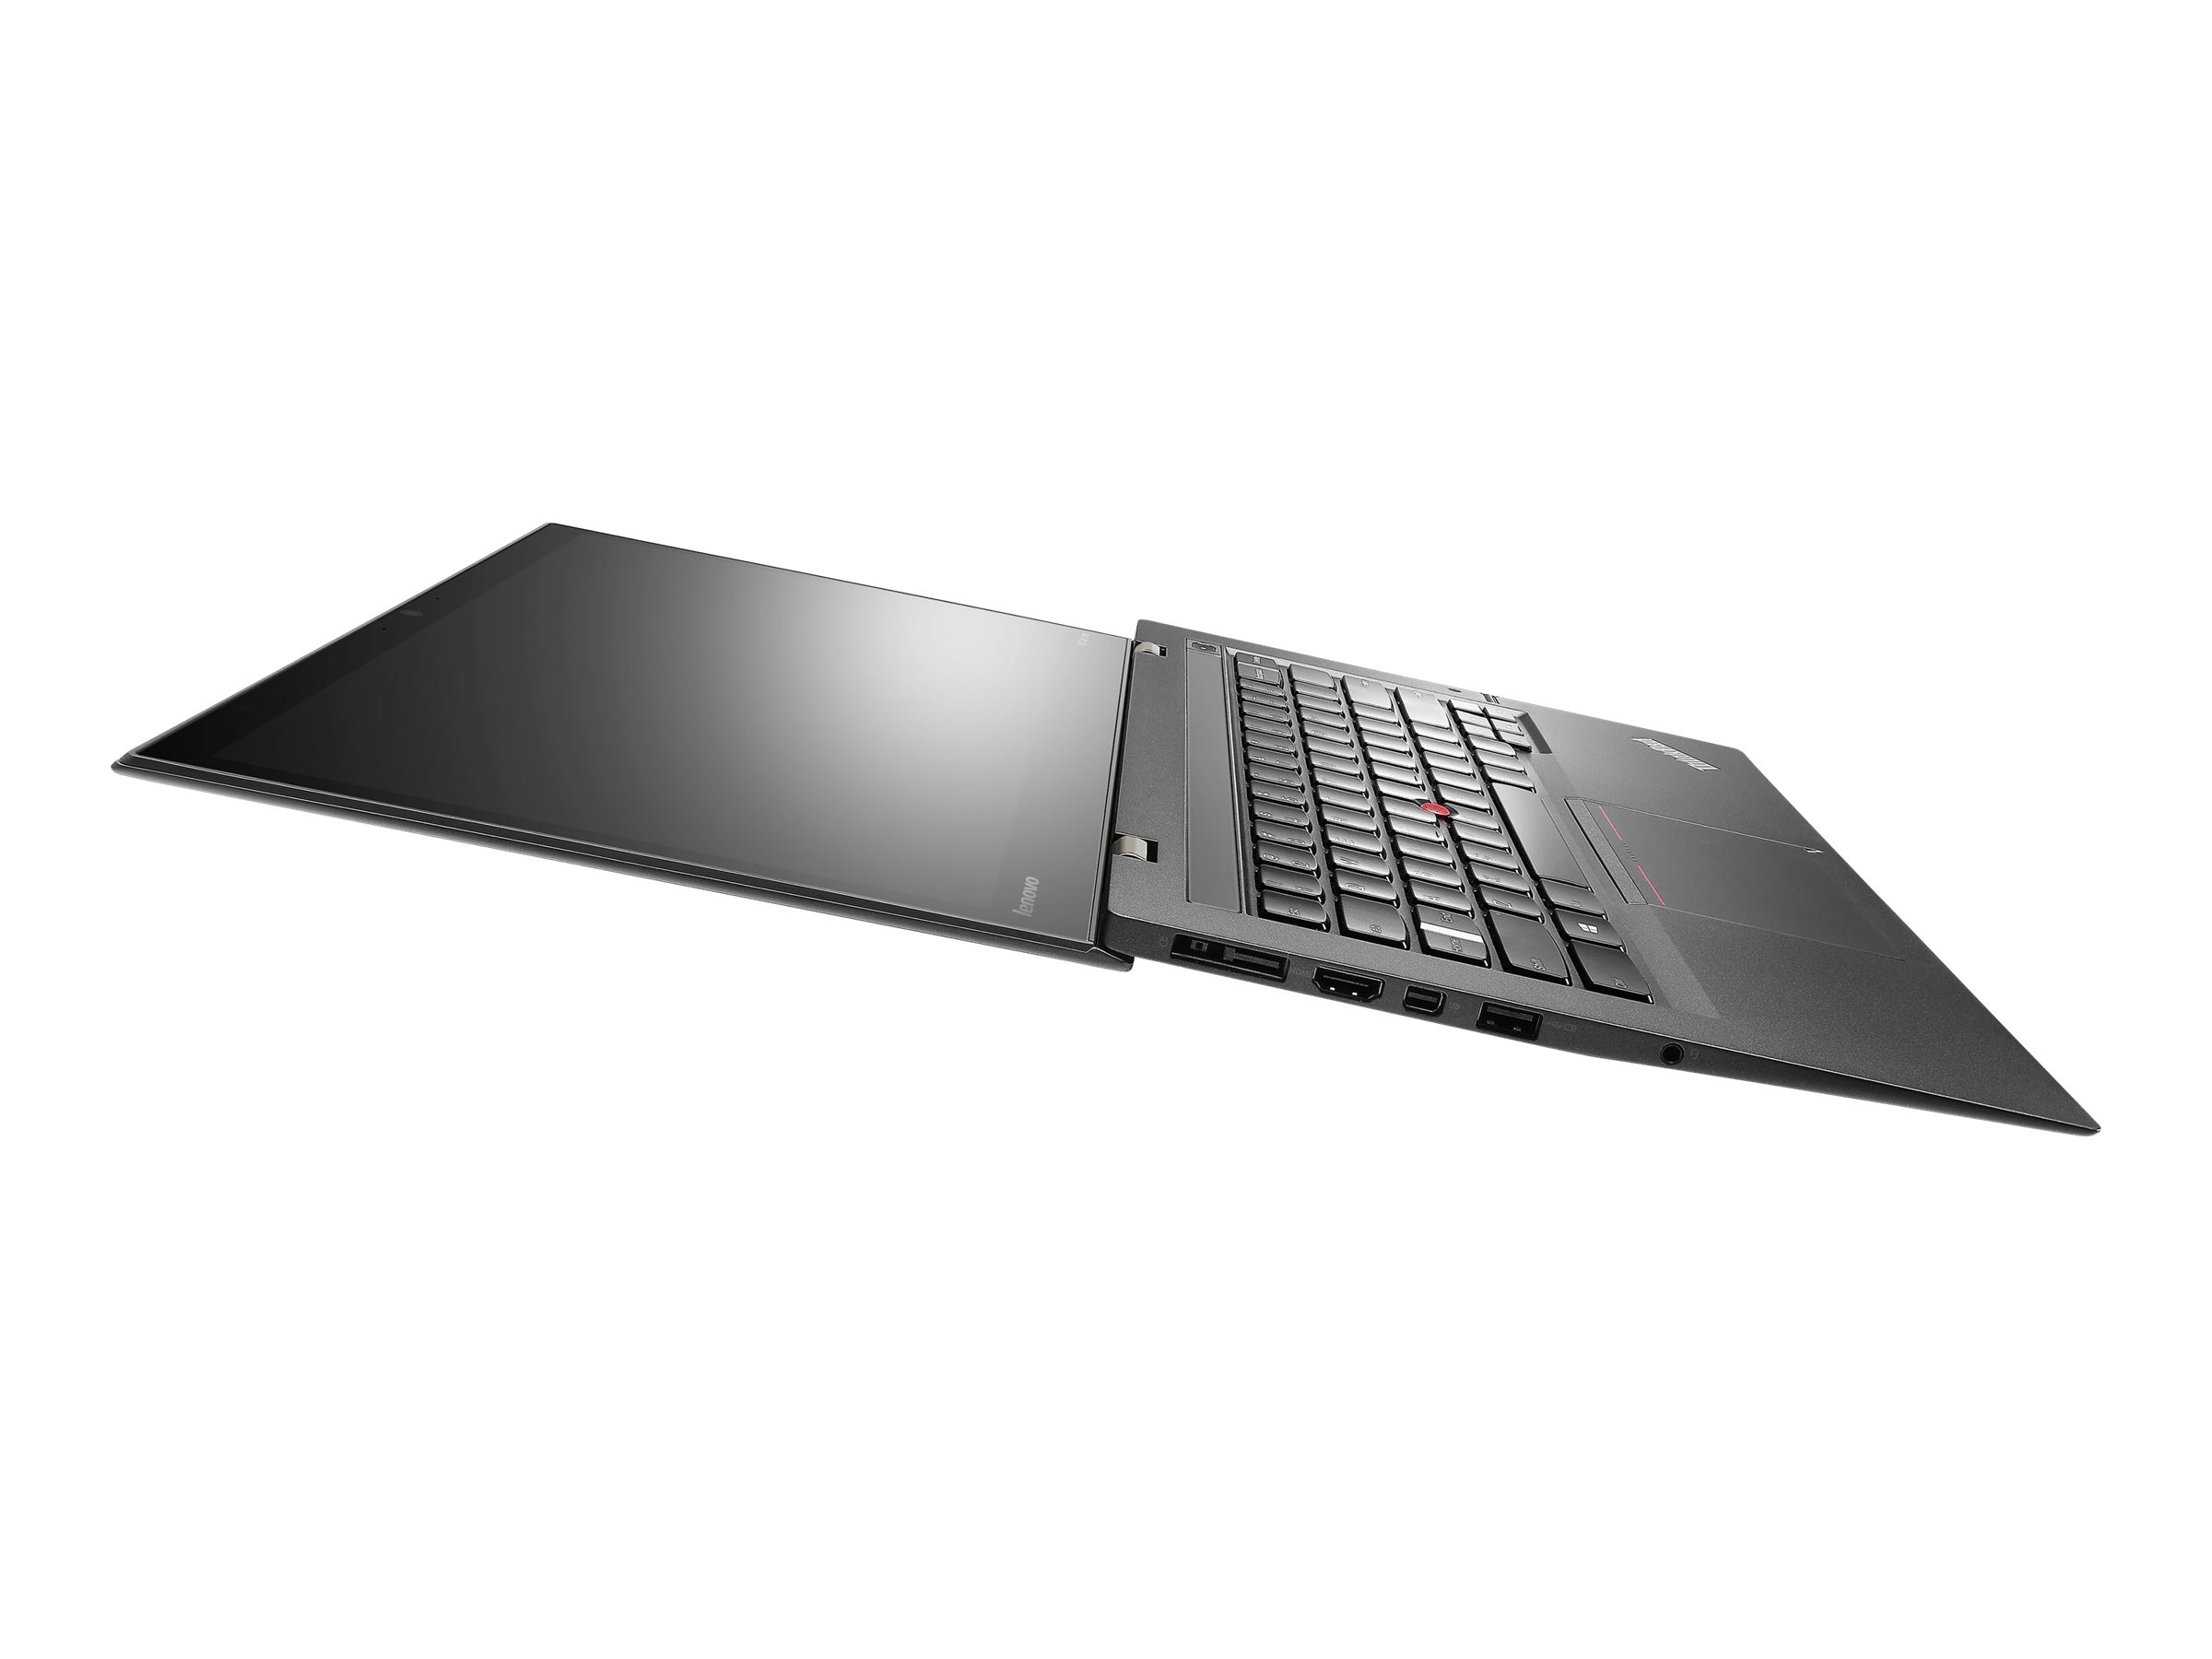 Lenovo ThinkPad X1 Carbon 2.3GHz Core i5 14in display, 20BT003XUS